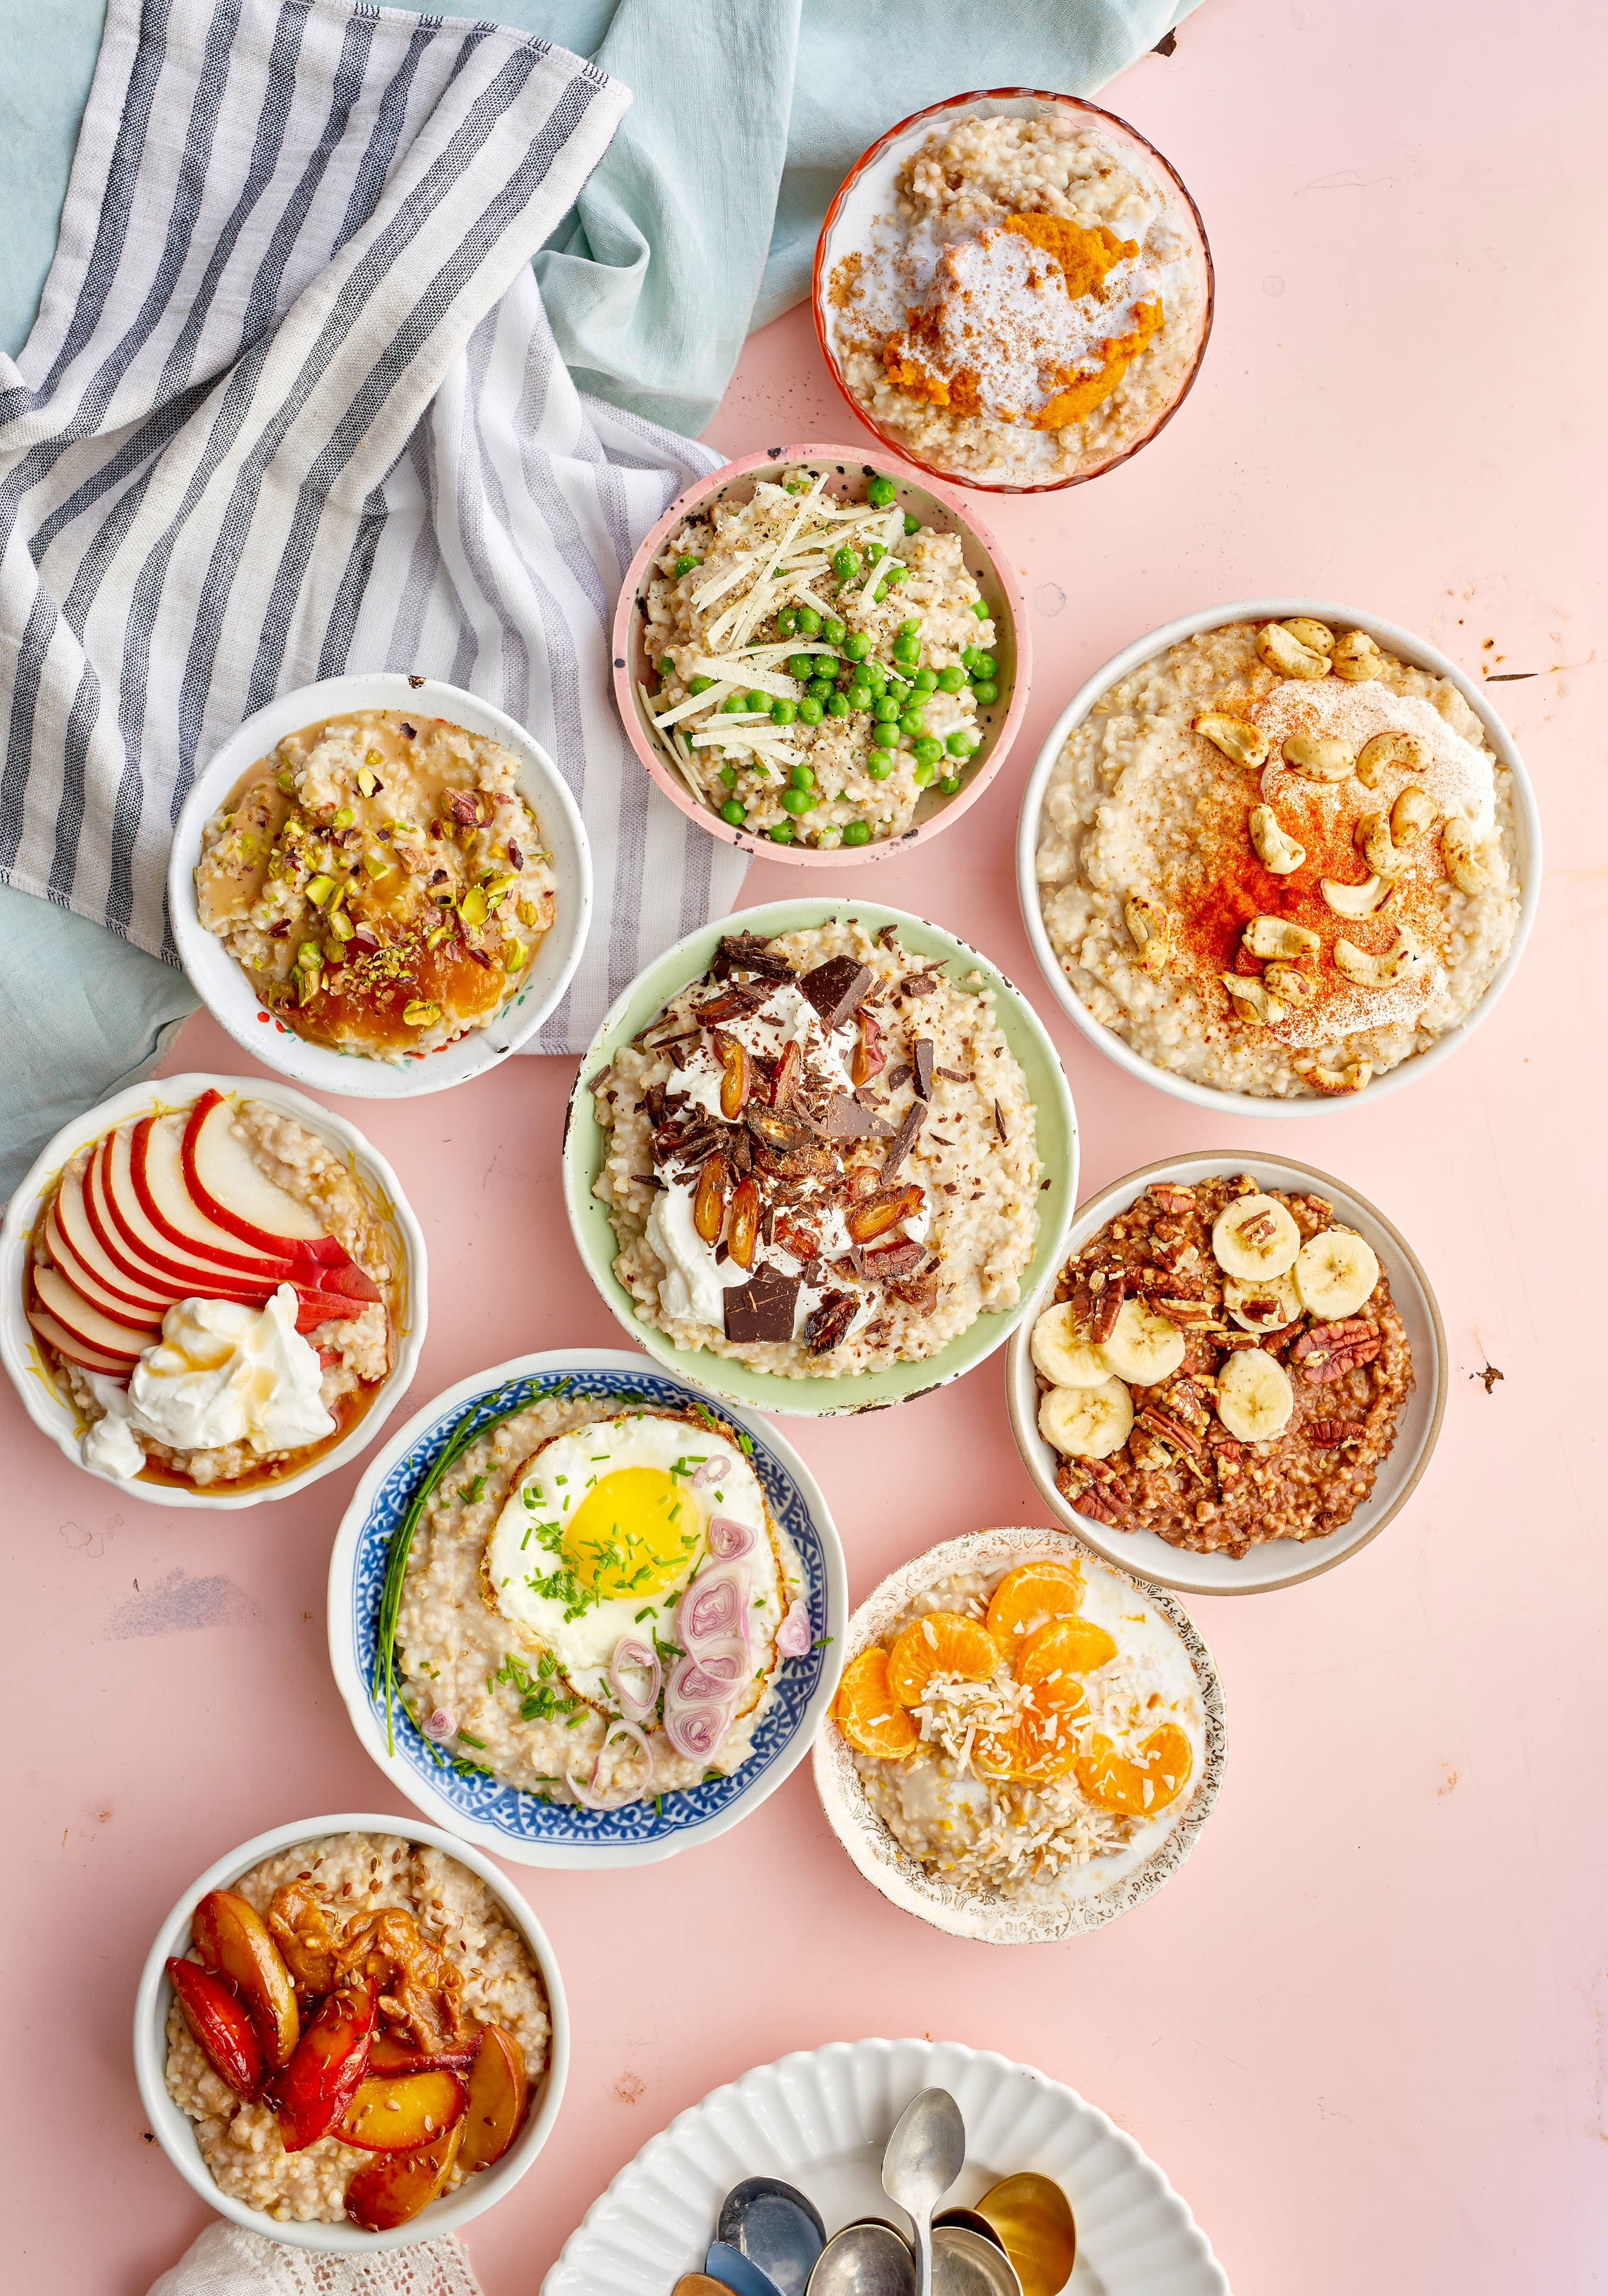 10 different toppings for oatmeal